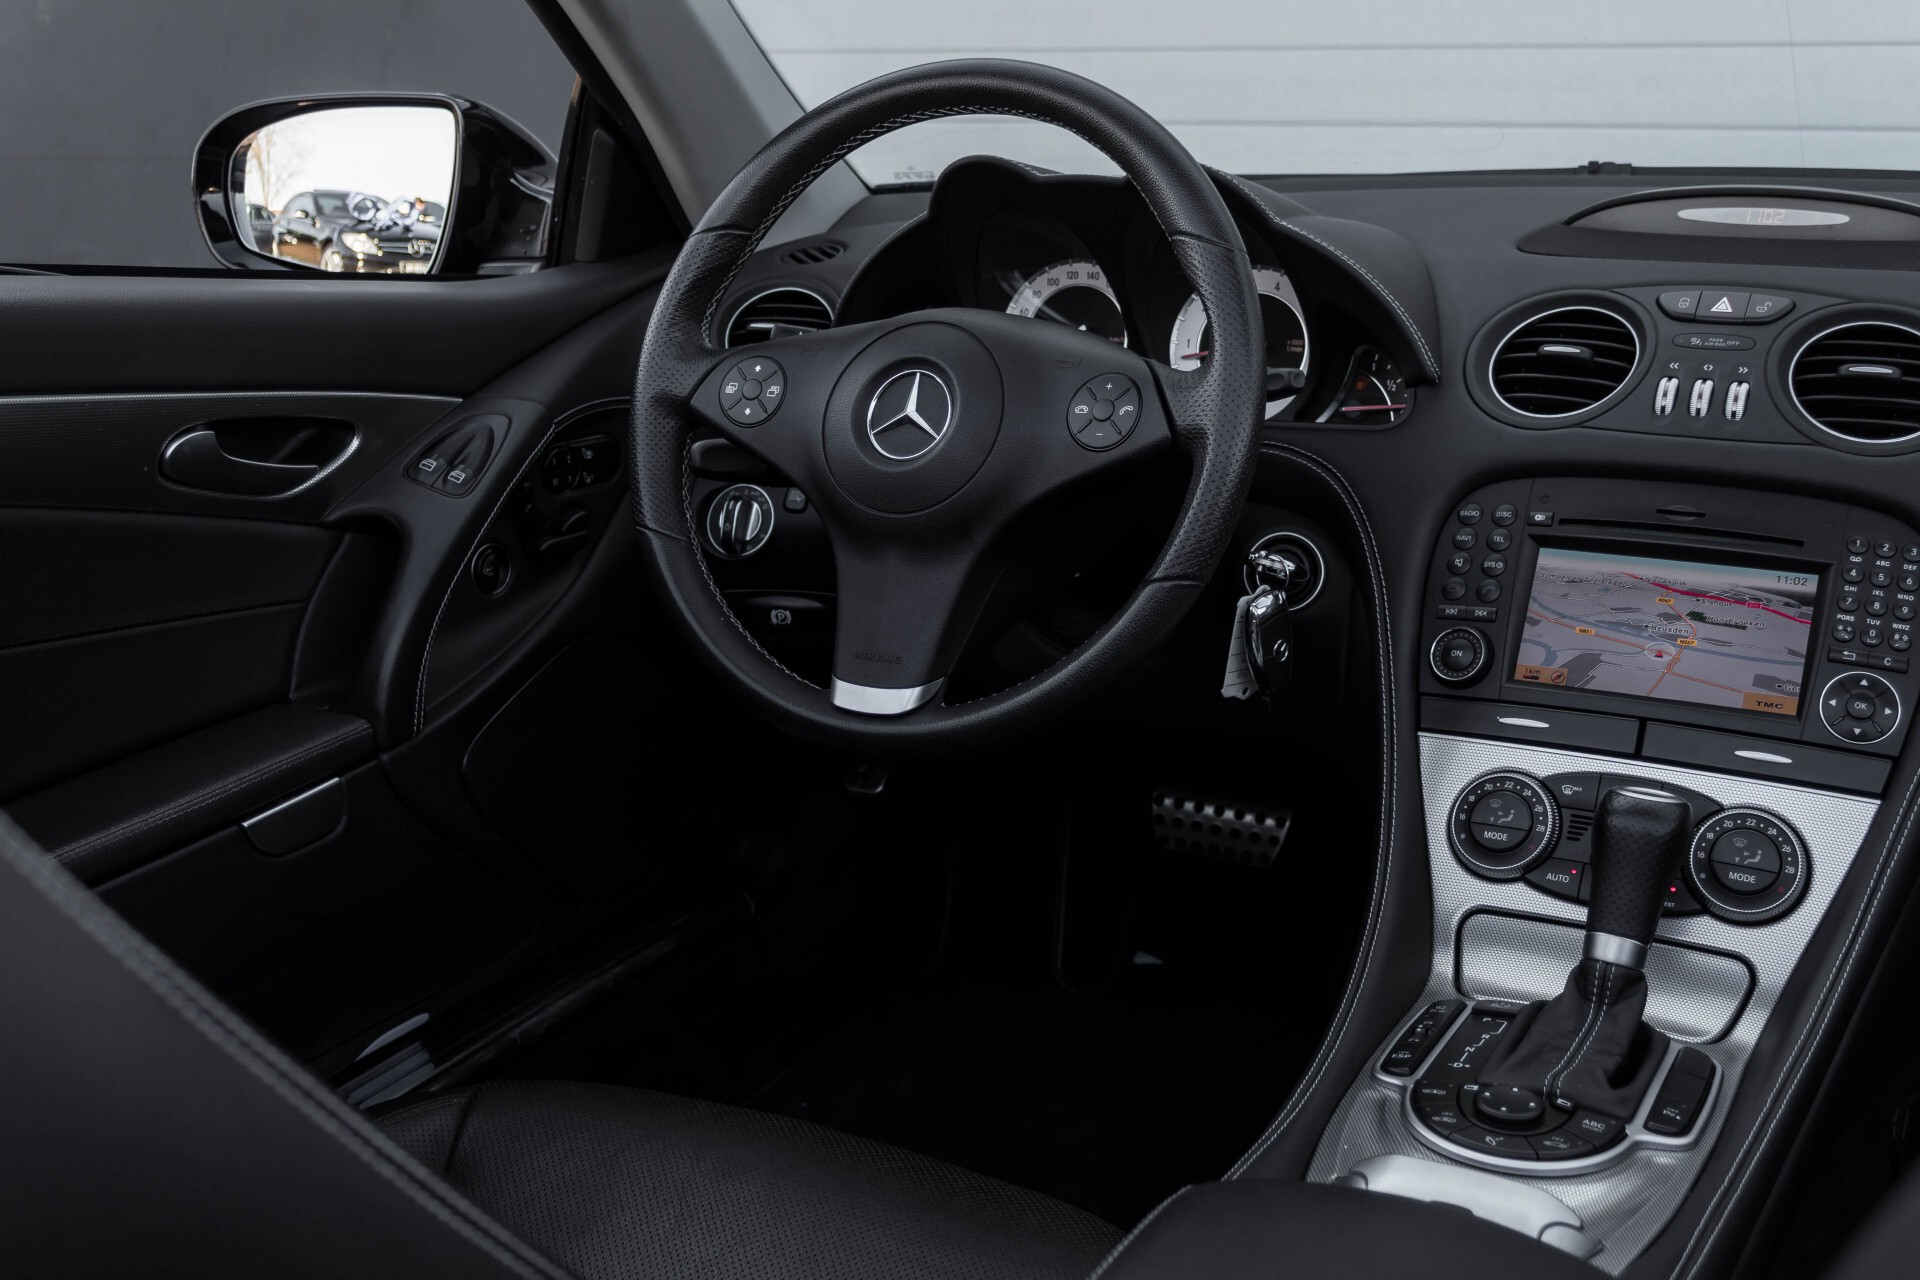 Mercedes-Benz SL-Klasse 500 Sport ABC/Harman-Kardon/Comand/Distronic Aut7 NP €175292 Foto 8